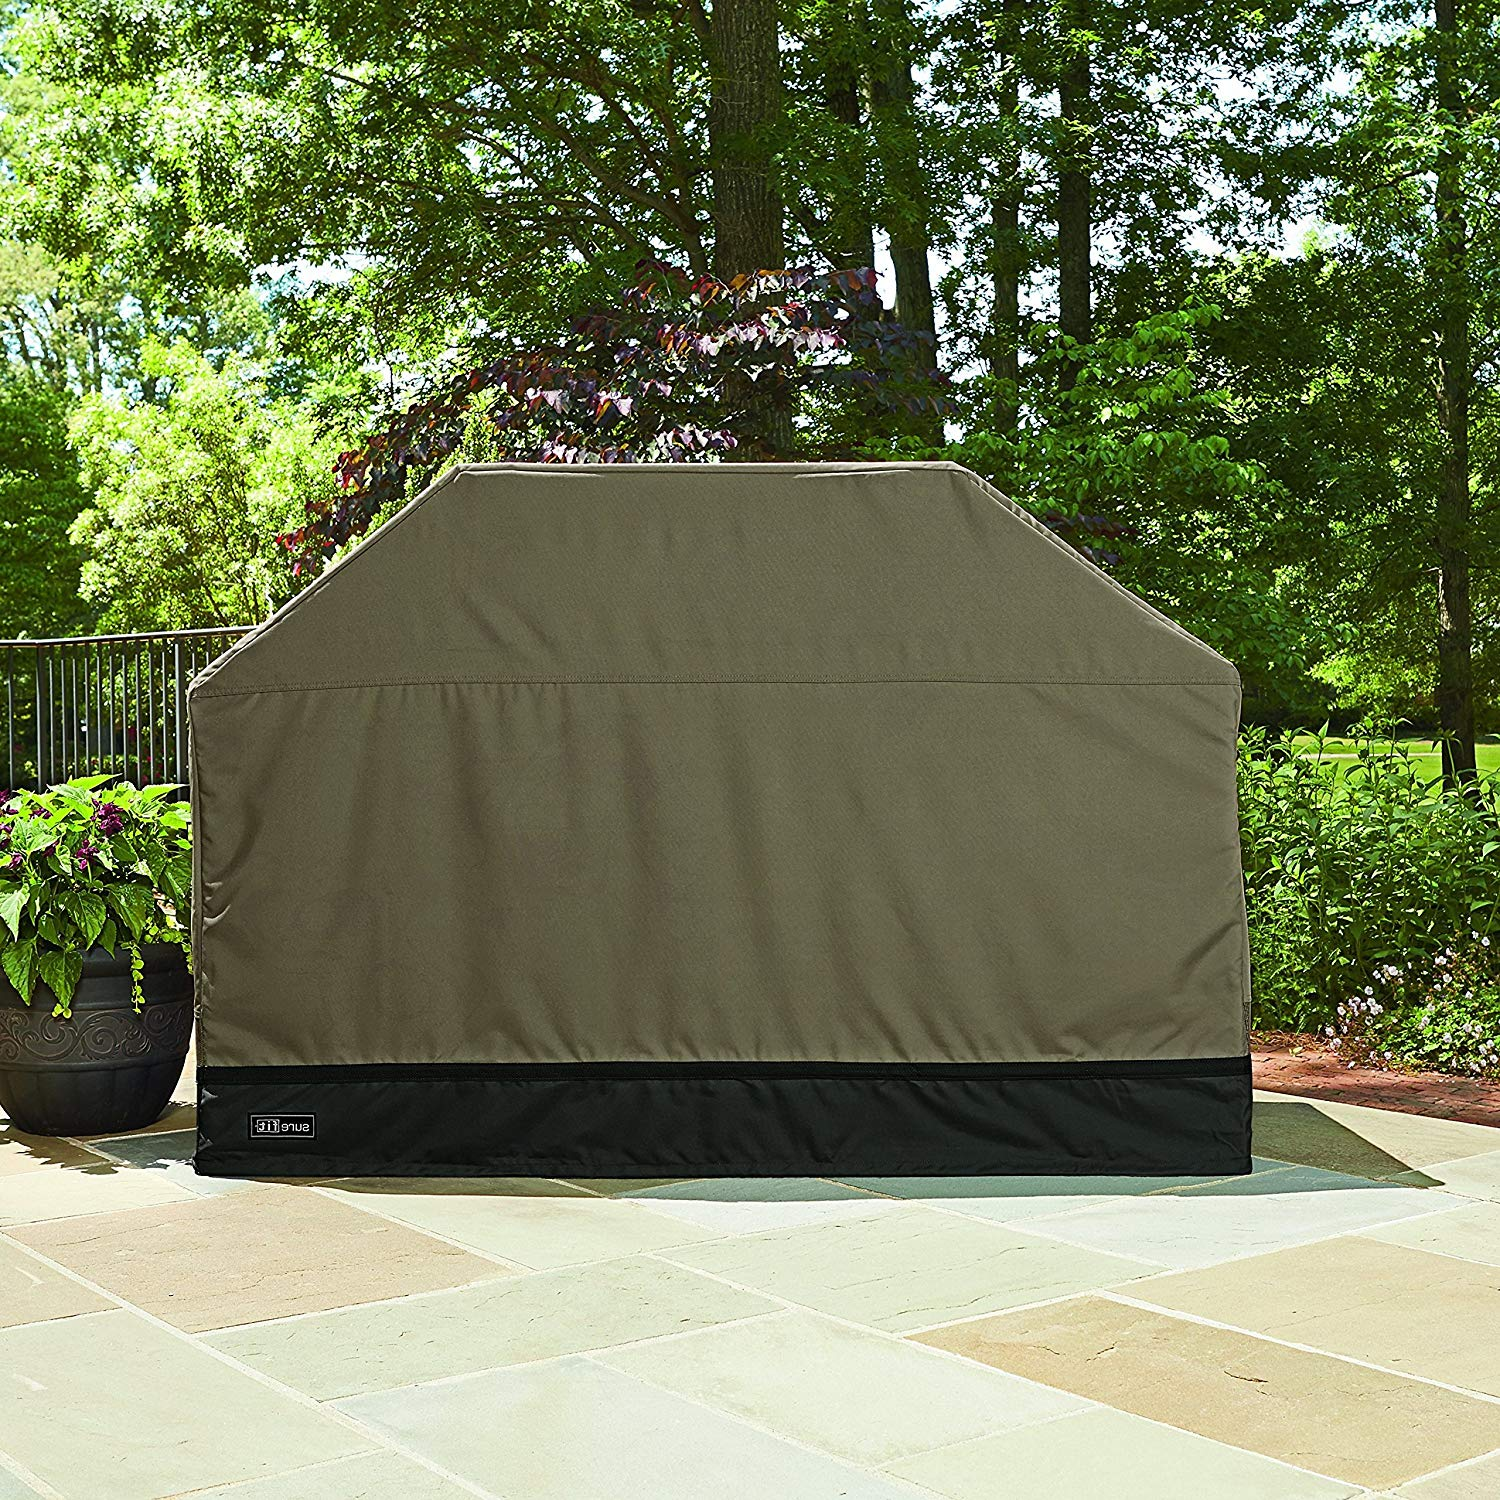 Ln 1 Piece Taupe Gray Outdoor Camping Grill Cover Waterproof 70 Inch, Water Repellent BBQ Cover Large Durable Patio Barbecue Cover Heavy Duty Material Specially Engineered Coating, Polyester